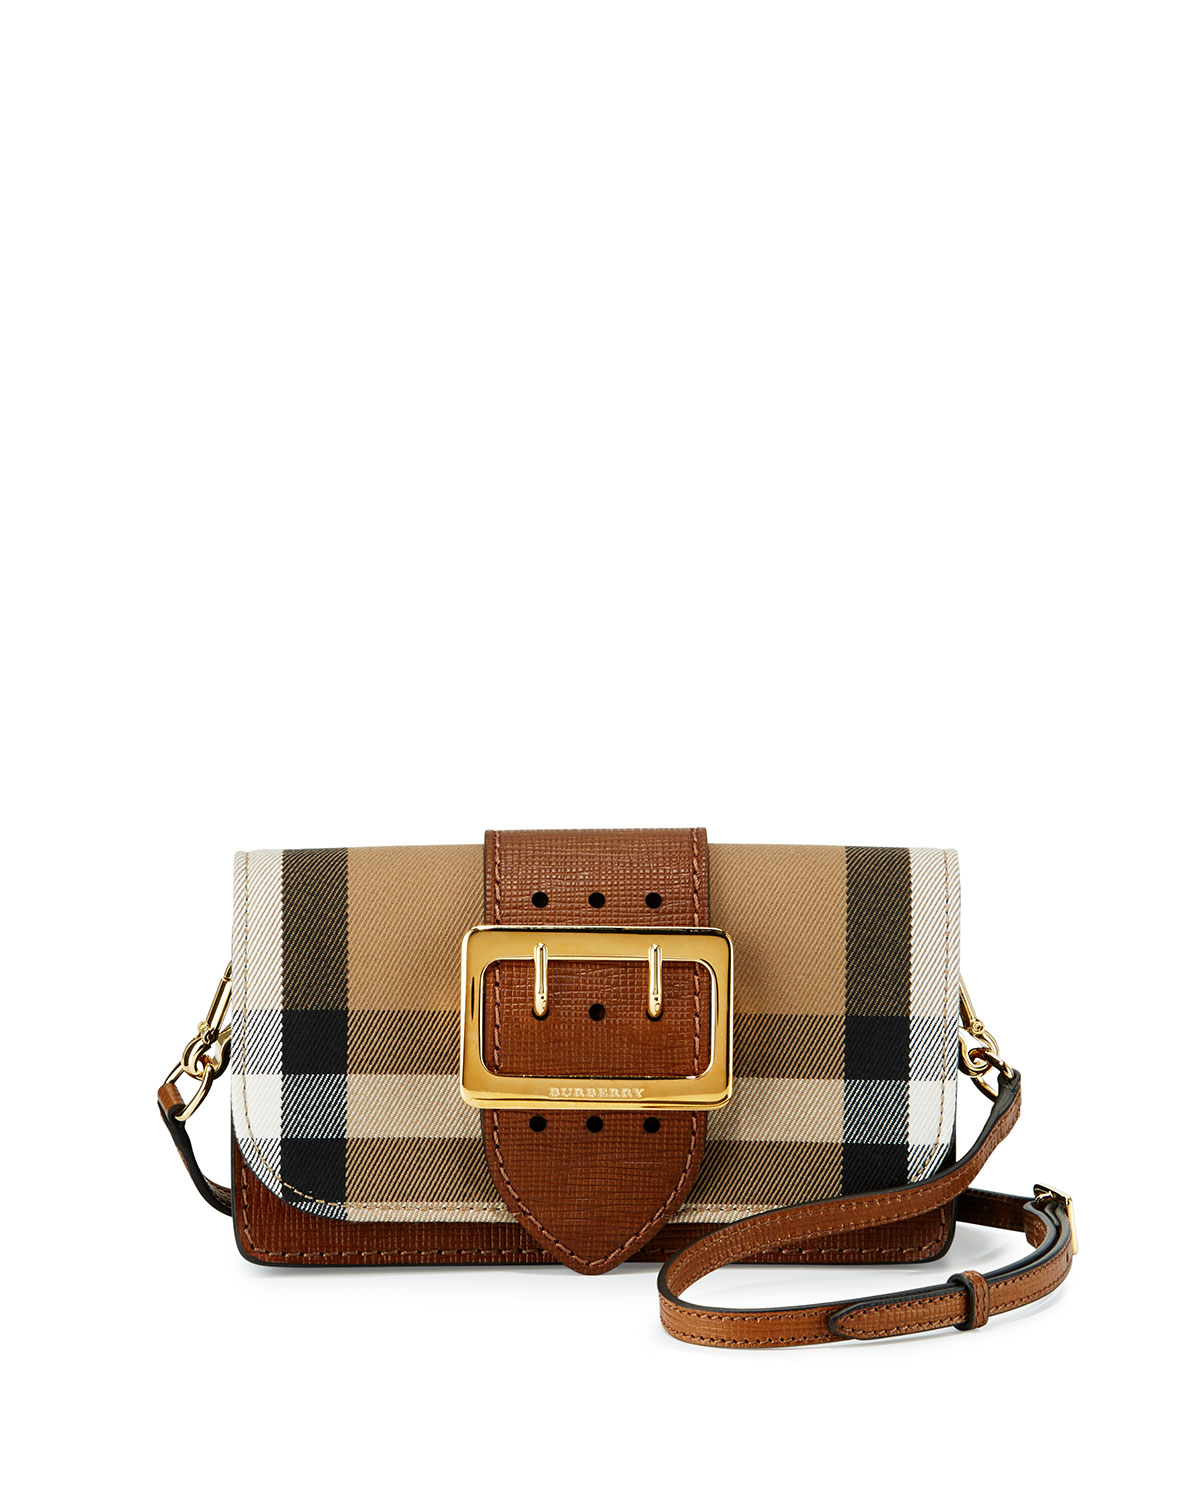 342a36474364 Burberry Small Buckle House Check   Leather Shoulder Bag